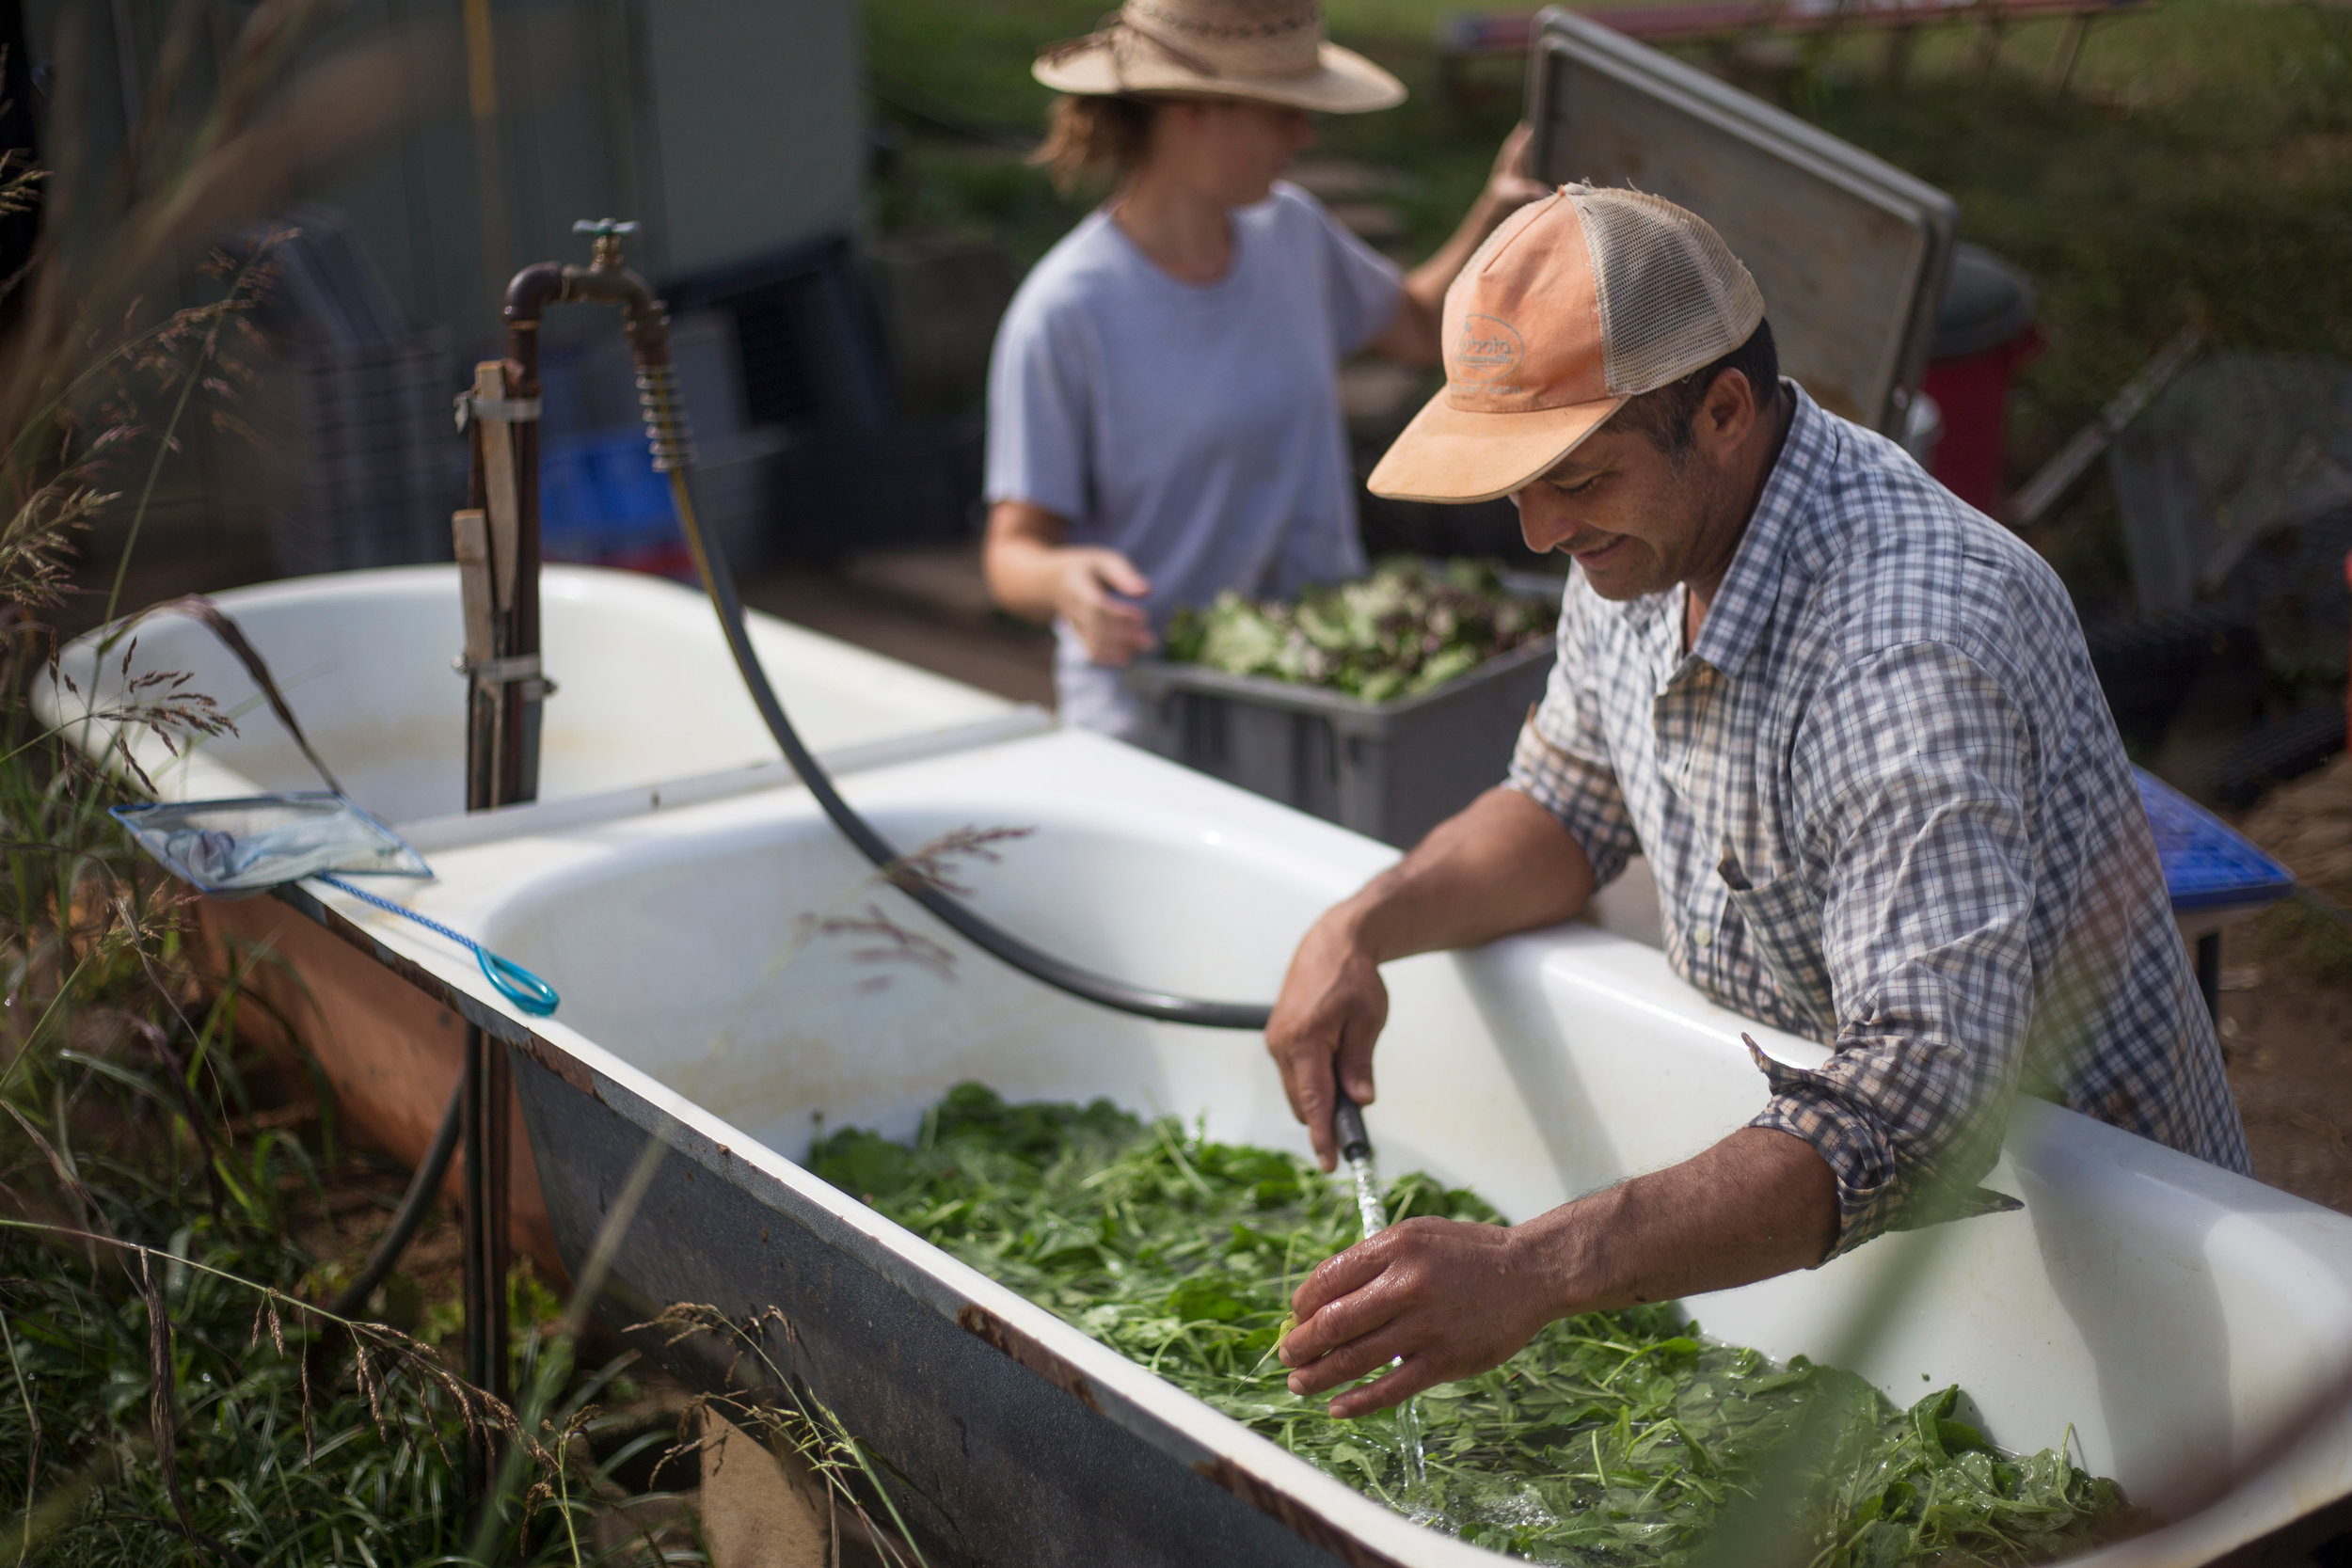 Co-owner Lalo Lazaro washes arugula Oct. 10, 2017.